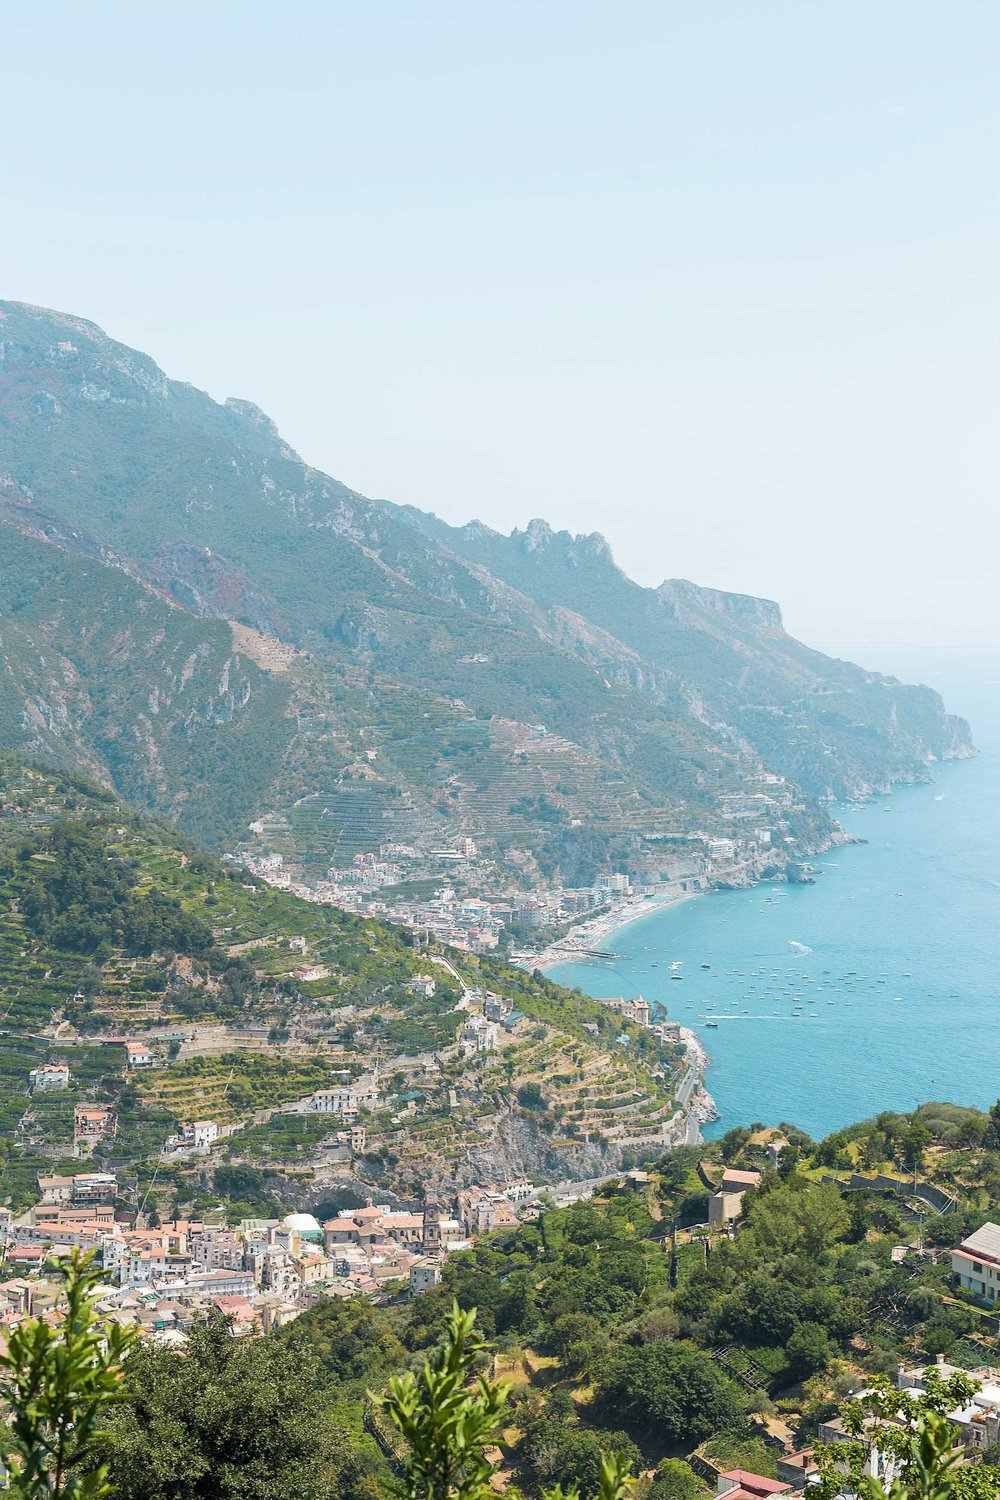 Views from a scooter ride around the Amalfi Coast